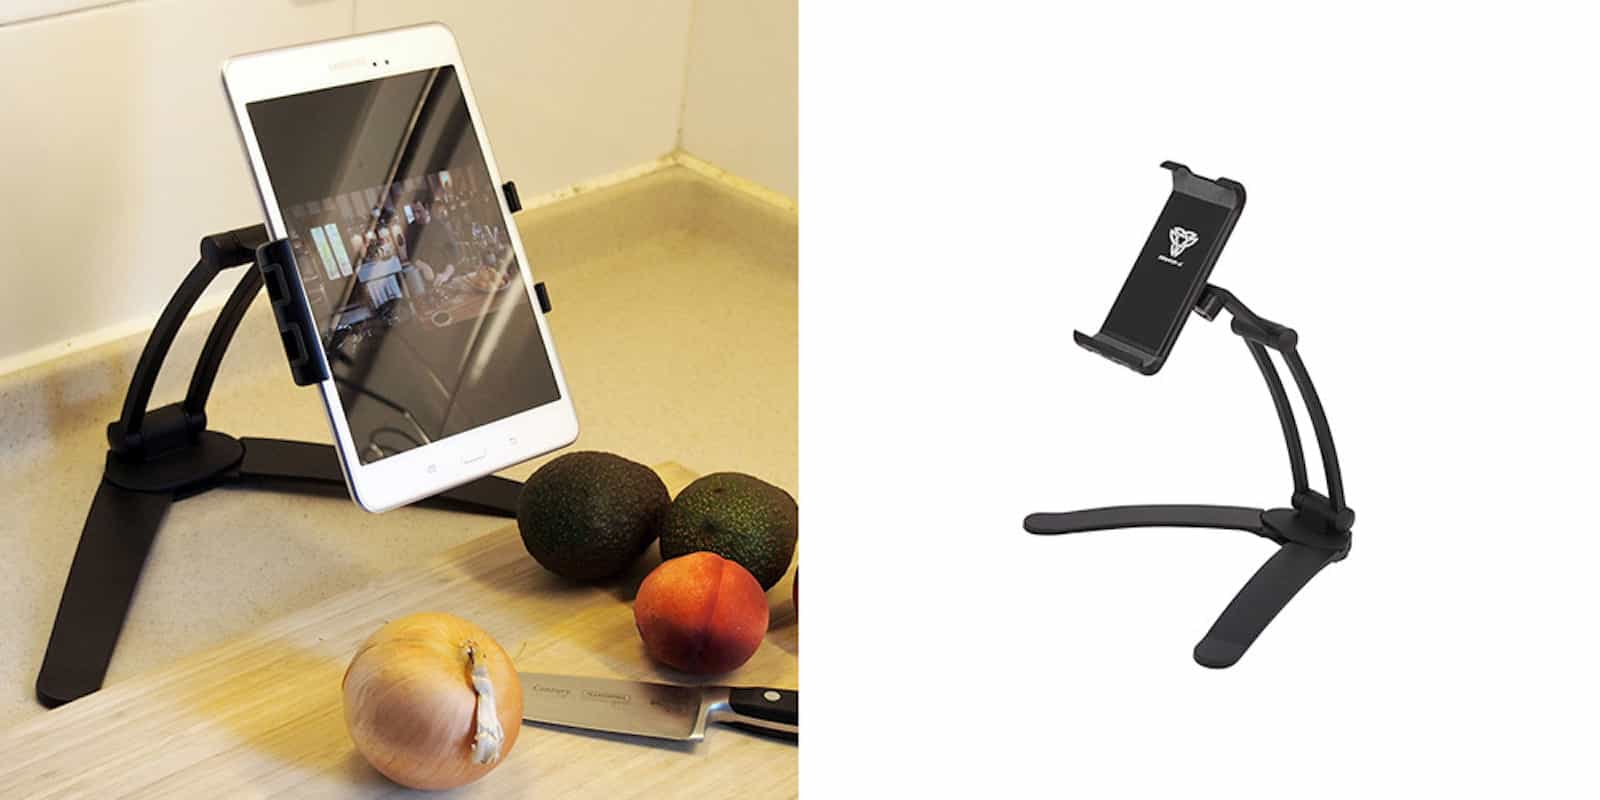 CoM - ARMOR-X 2-in-1 Tablet Stand